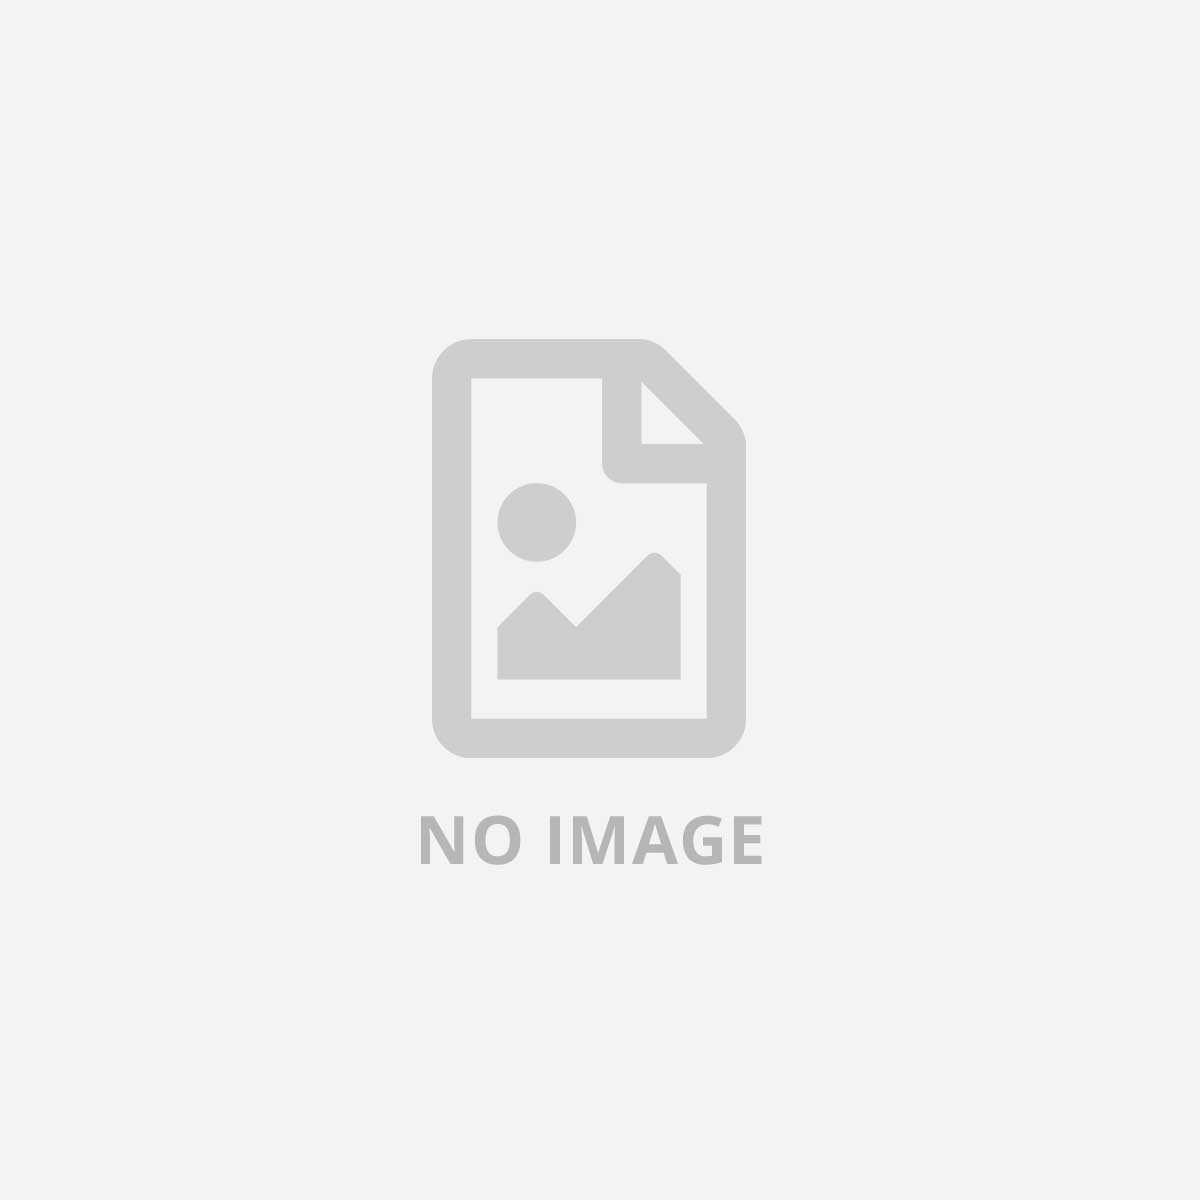 WESTERN DIGITAL WD BLUE HDD 500GB  2 5 (MB)